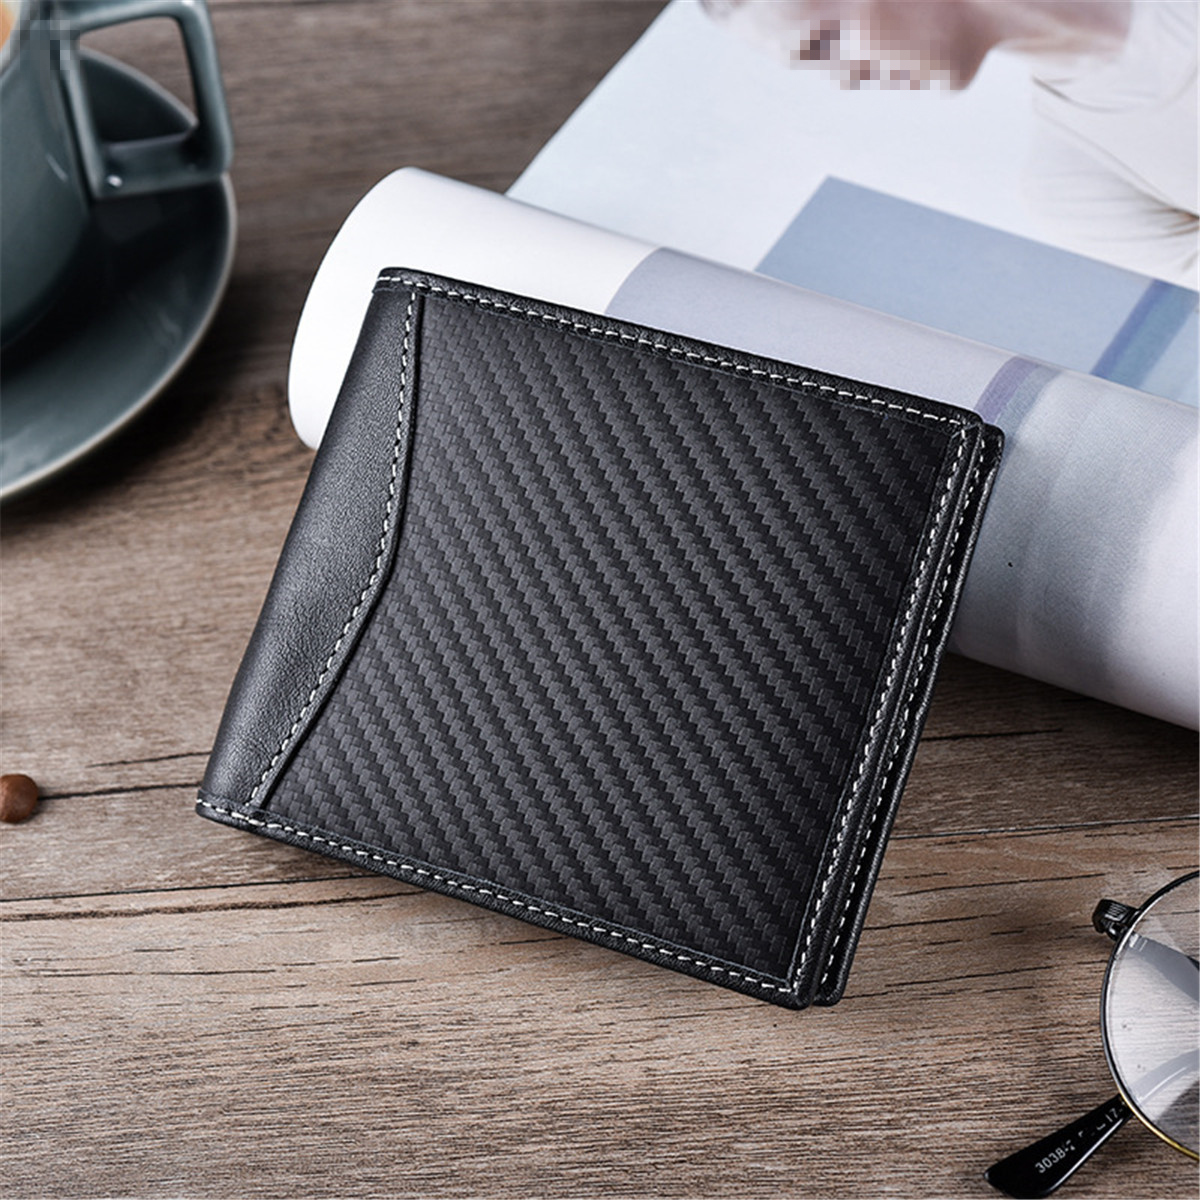 JINBAOLAI Carbon Fiber Men Credit Card Holder Travel Minimalist Bifold RFID Blocking Wallet